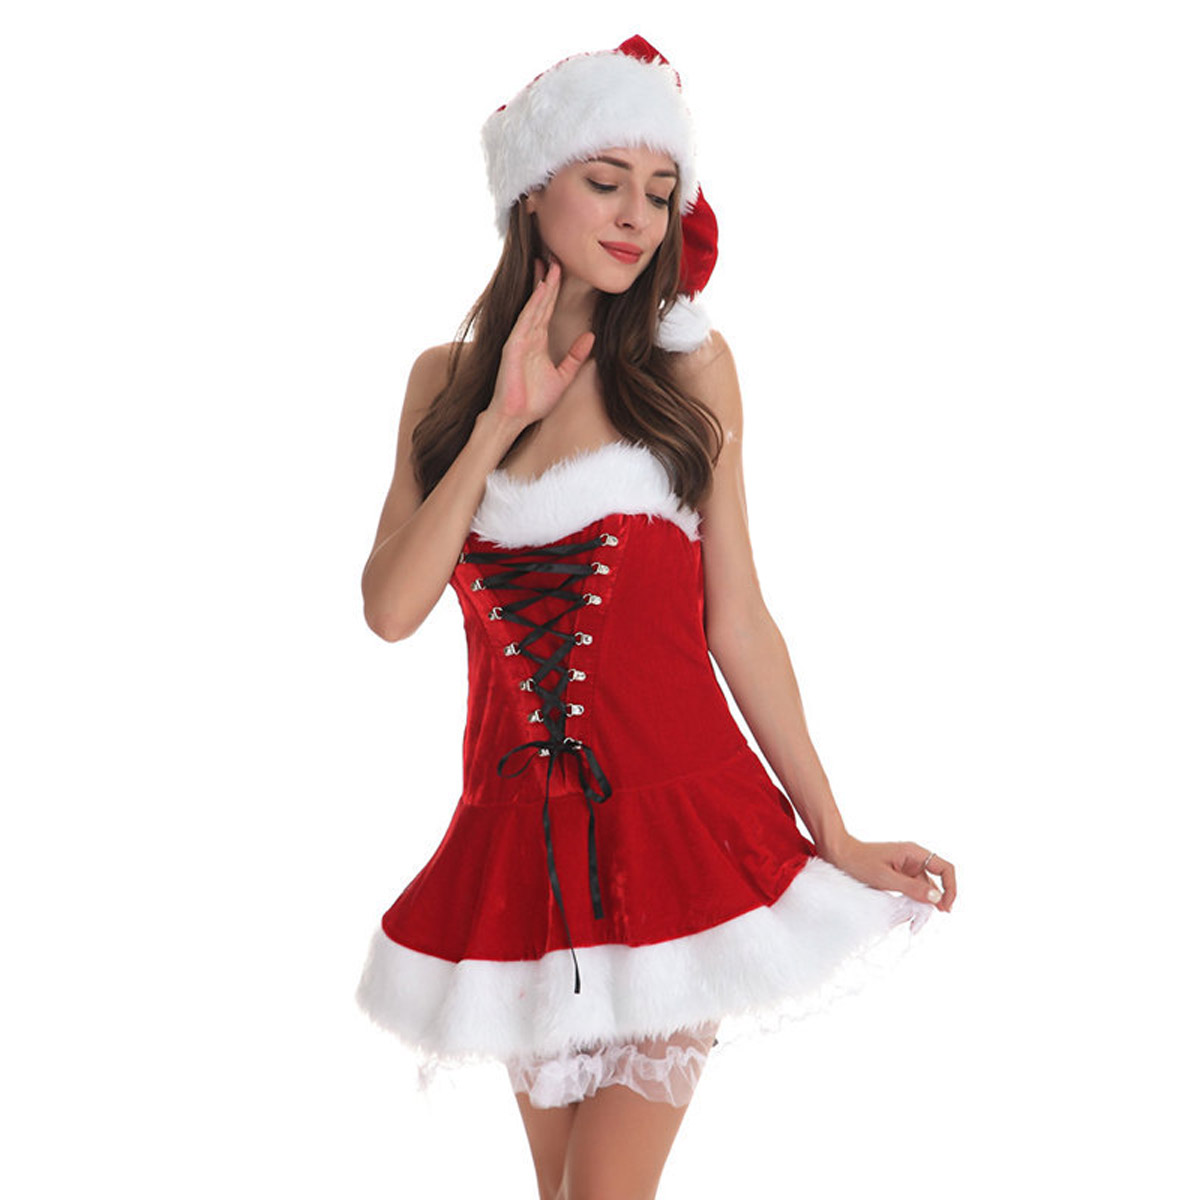 798e5f5f0fa Sexy Adult Women Christmas Strapless Corset Santa Claus Costumes Gifts  Christmas Party Dress With Hat + Thong Set Red/One Size